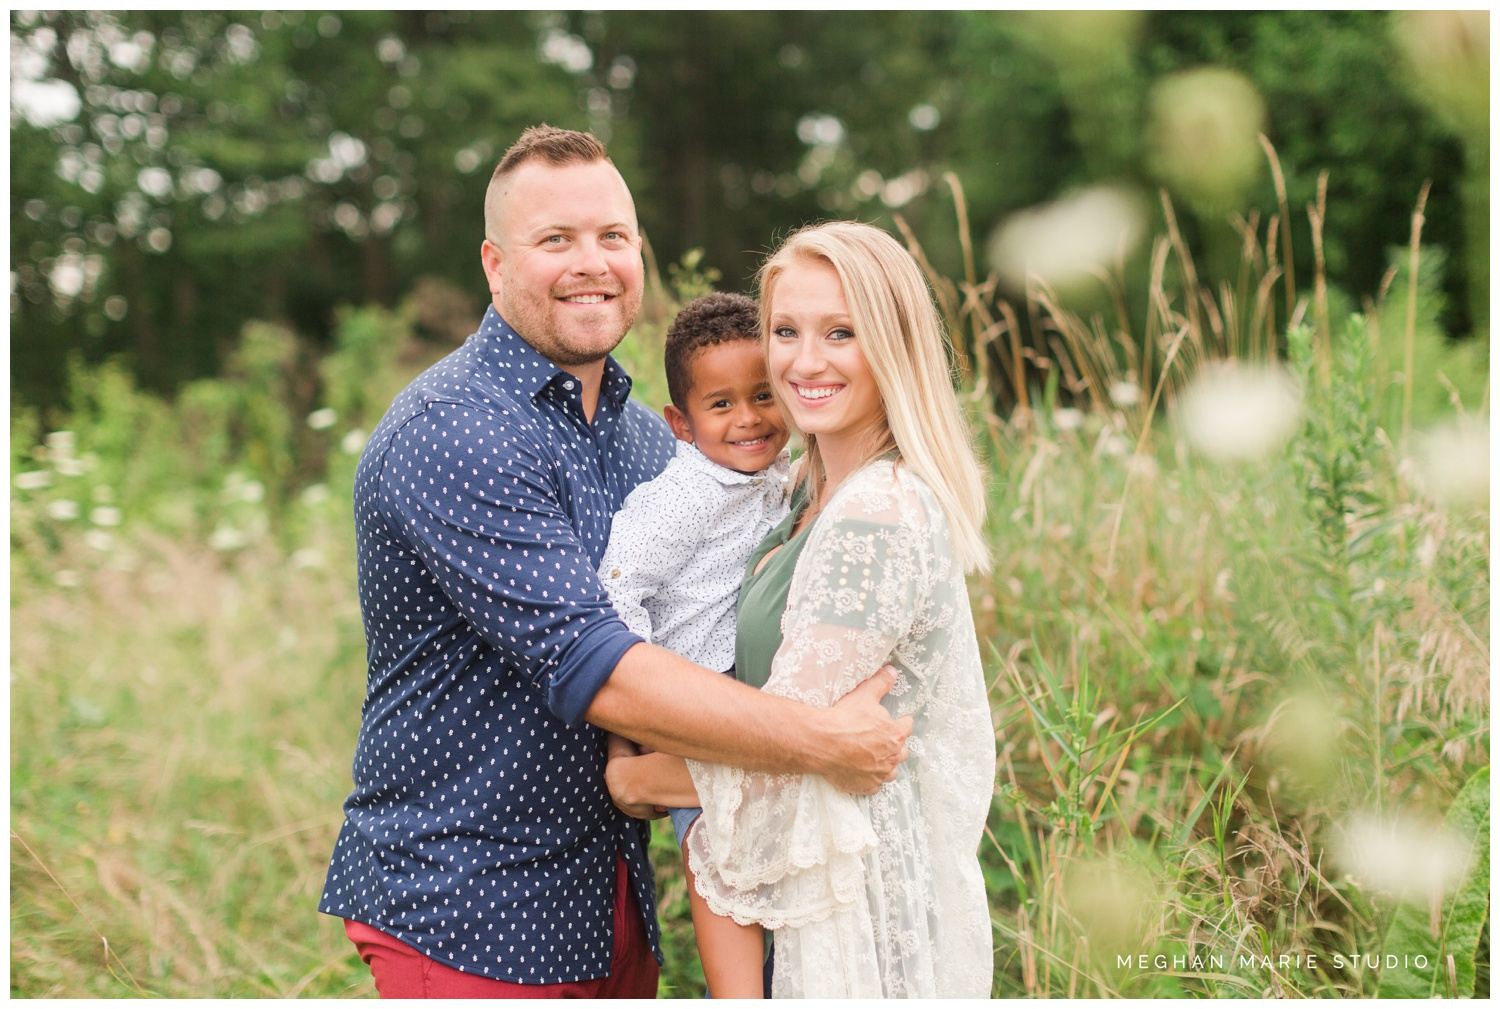 meghan marie studio ohio dayton troy photographer wedding photography engagement alex kaila family honeycreek preserve champagne downtown courthouse urban rural earth toned nature woods barn country city stone fountain elegant_0474.jpg